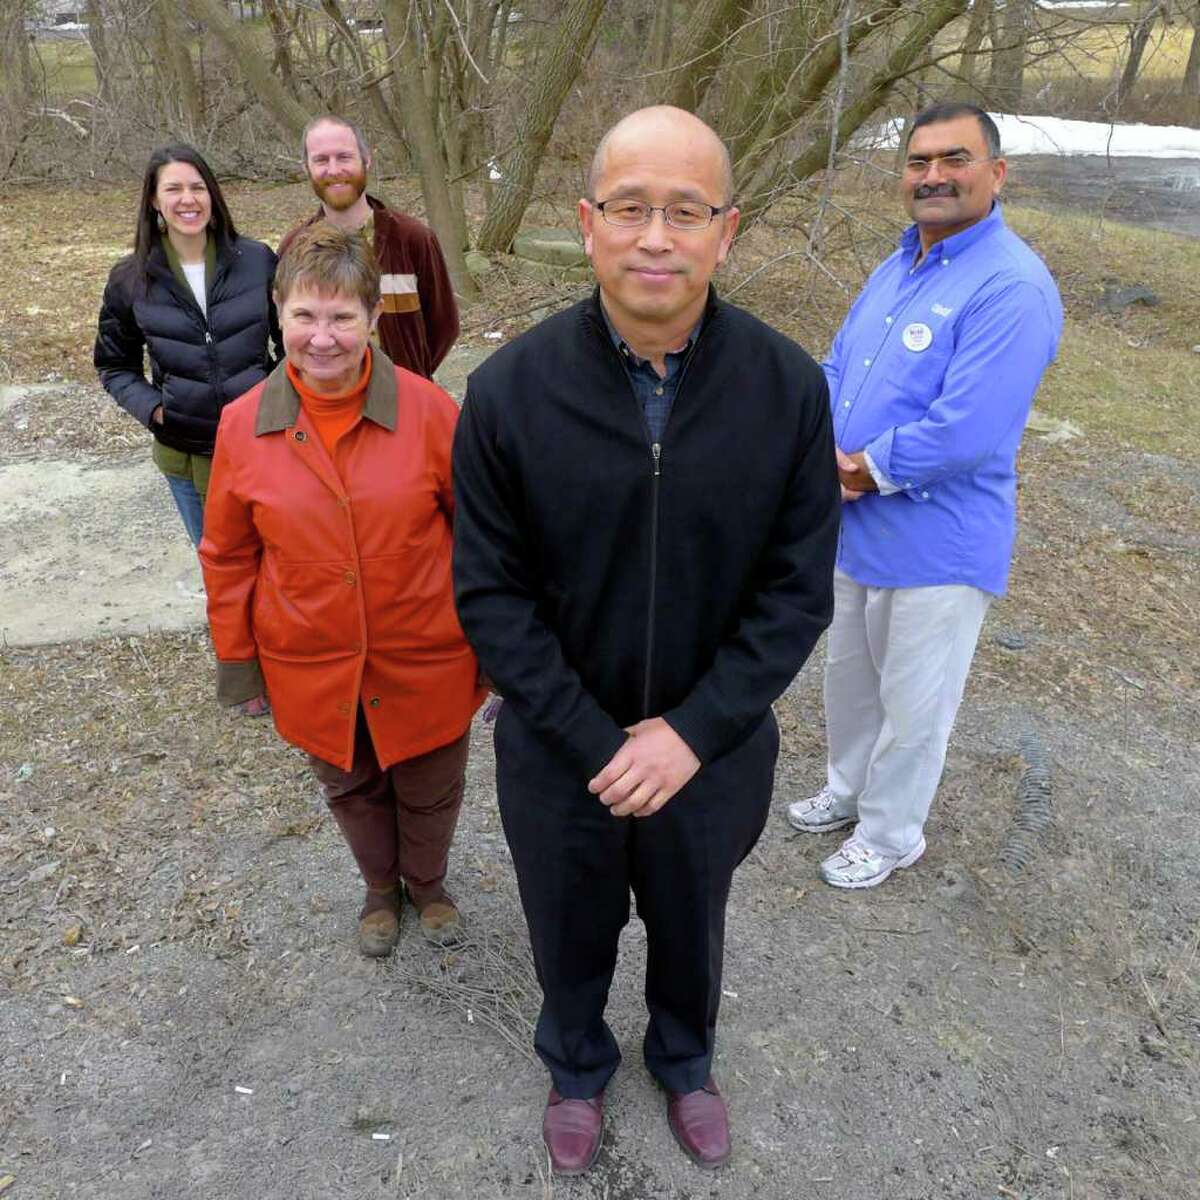 From left, Jessica and Ryan DuVal, Dianne Luci, Pastor Charlie Yang and Safder Ali members of a diversity panel members in Voorheesville Thursday March 31, 2011.( Michael P. Farrell/Times Union )